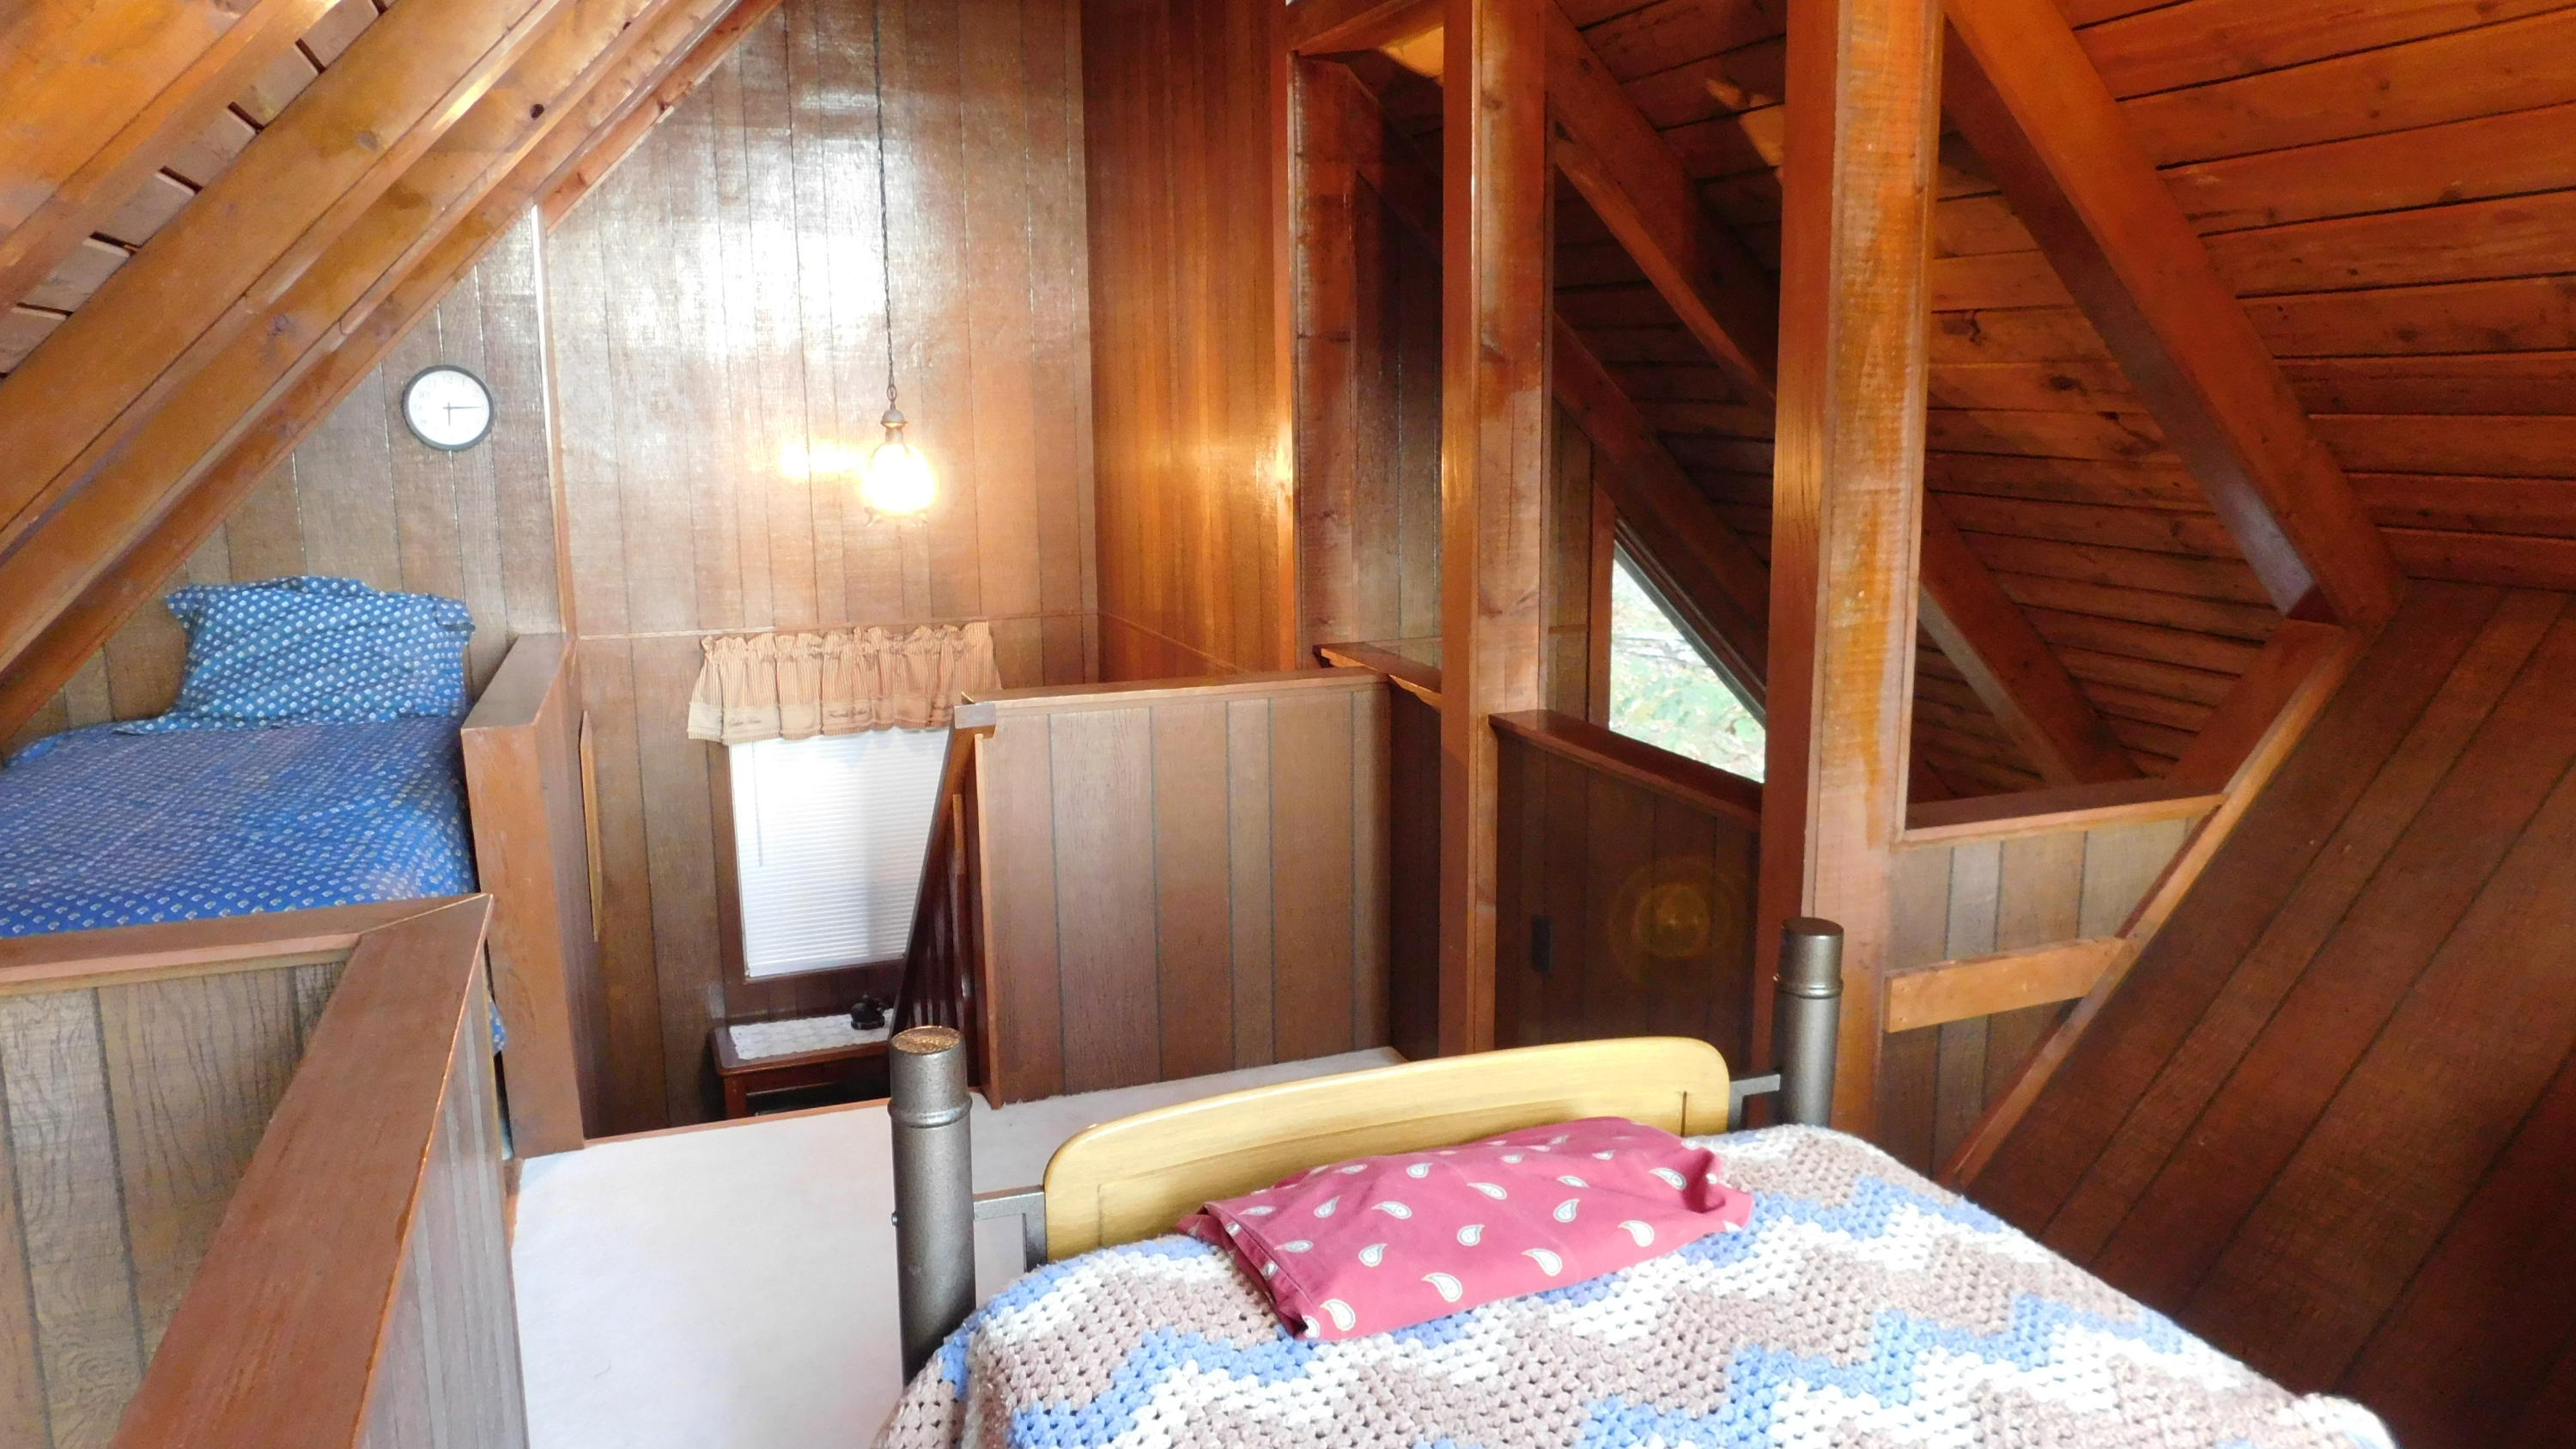 911 Swann Saddle Rd, Sevierville, Tennessee 37876, 2 Bedrooms Bedrooms, ,1 BathroomBathrooms,Single Family,For Sale,Swann Saddle,1100090